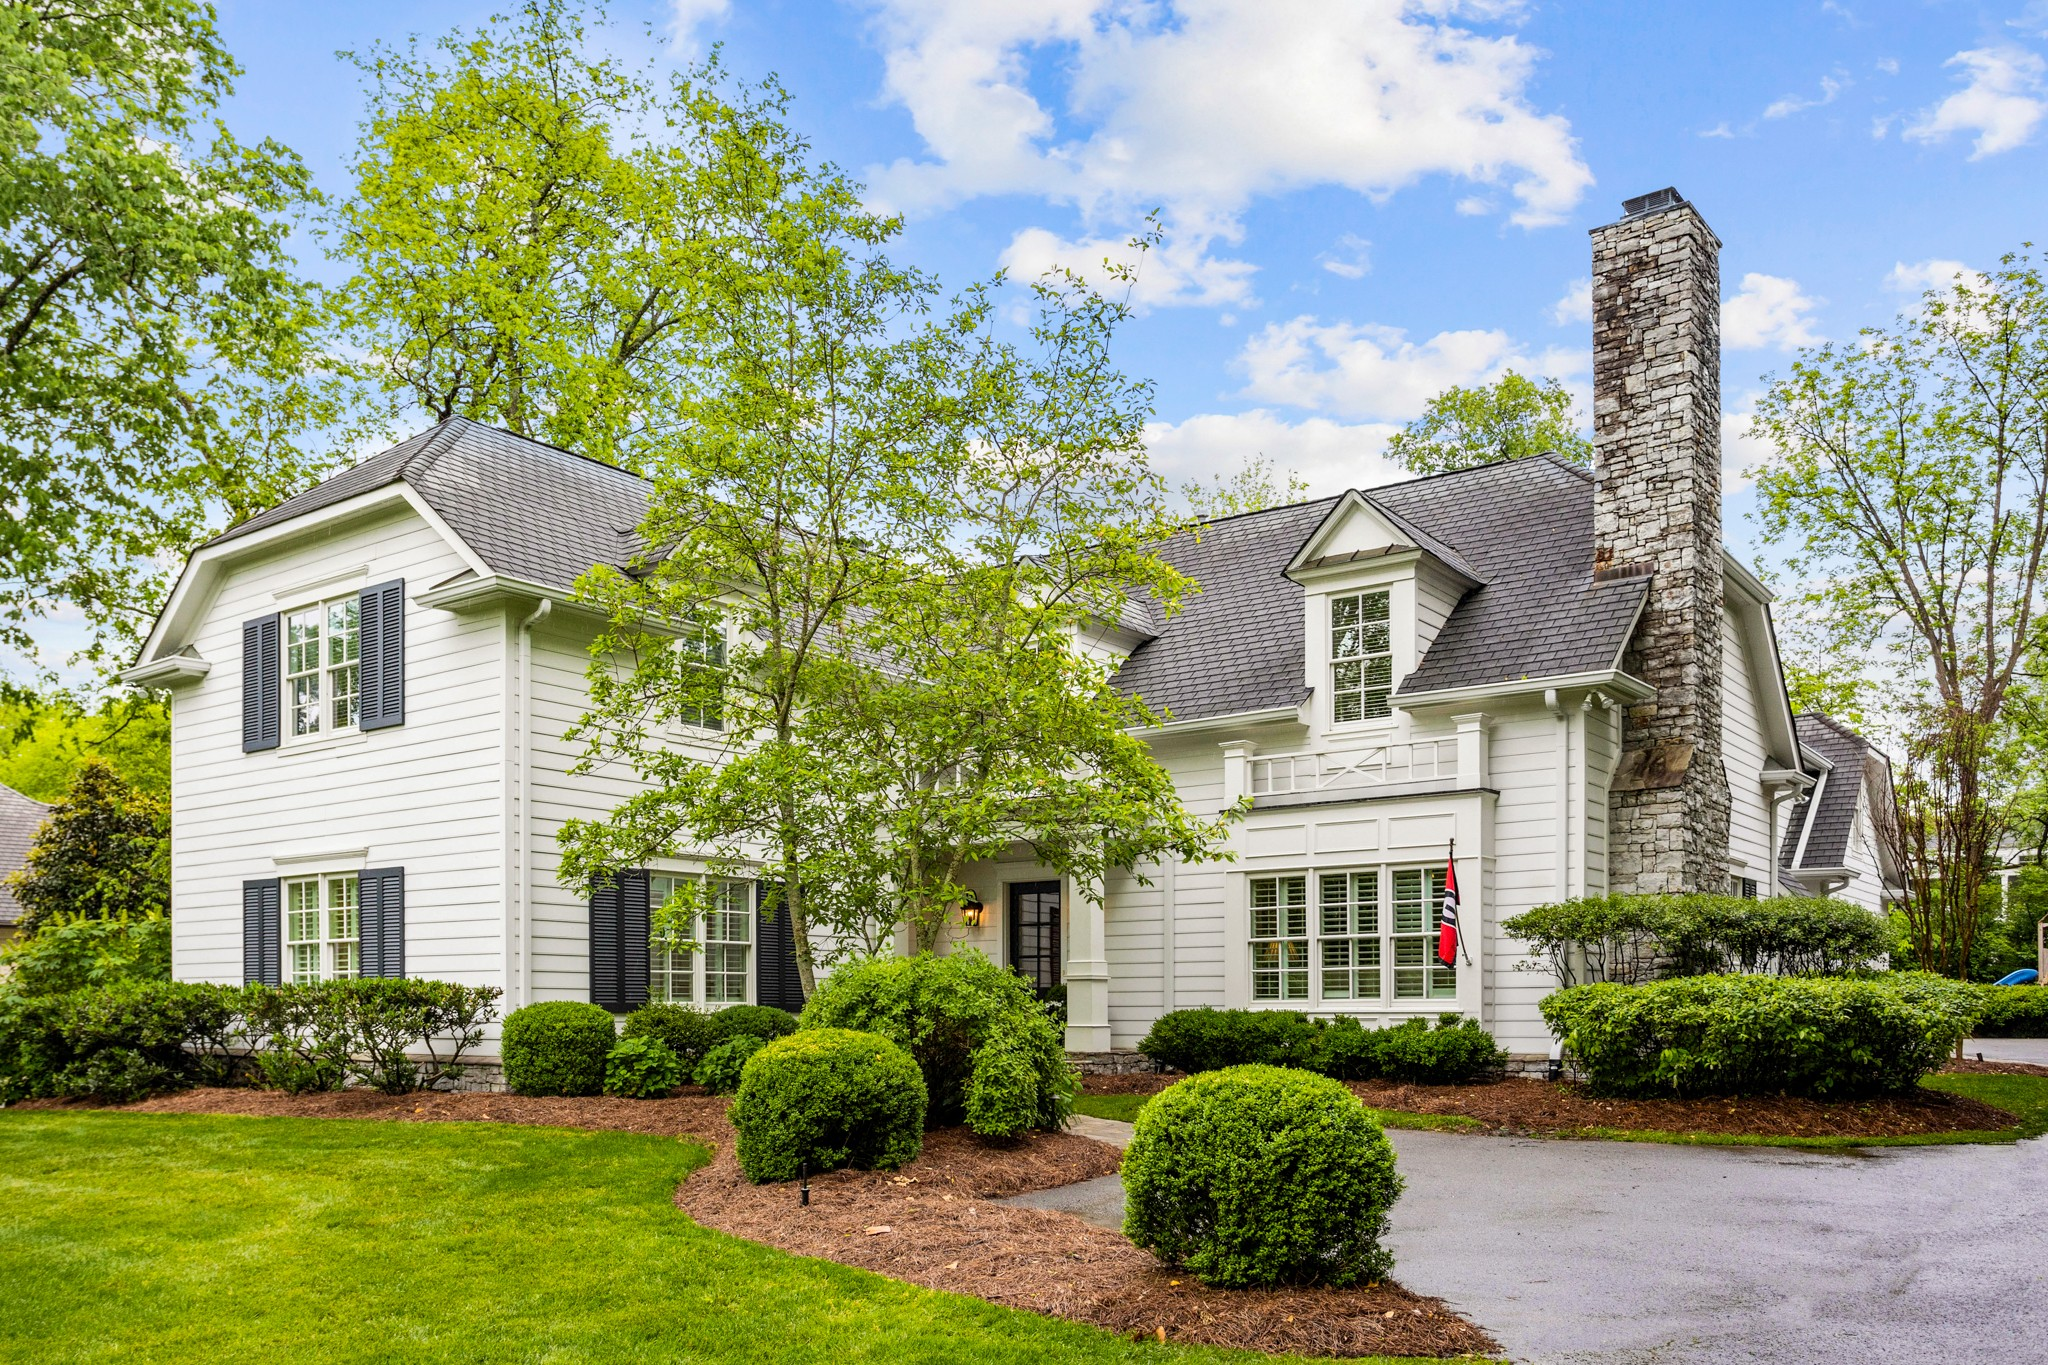 Classic Cape Cod style home on sought after Belle Meade street. 10 foot ceilings, pocket doors and sleek finishes make this 5 bedroom home a must see.Private, main level master suite.French doors open off of family room w fireplace.Large upstairs den/rec room.Attached garage and level lot.